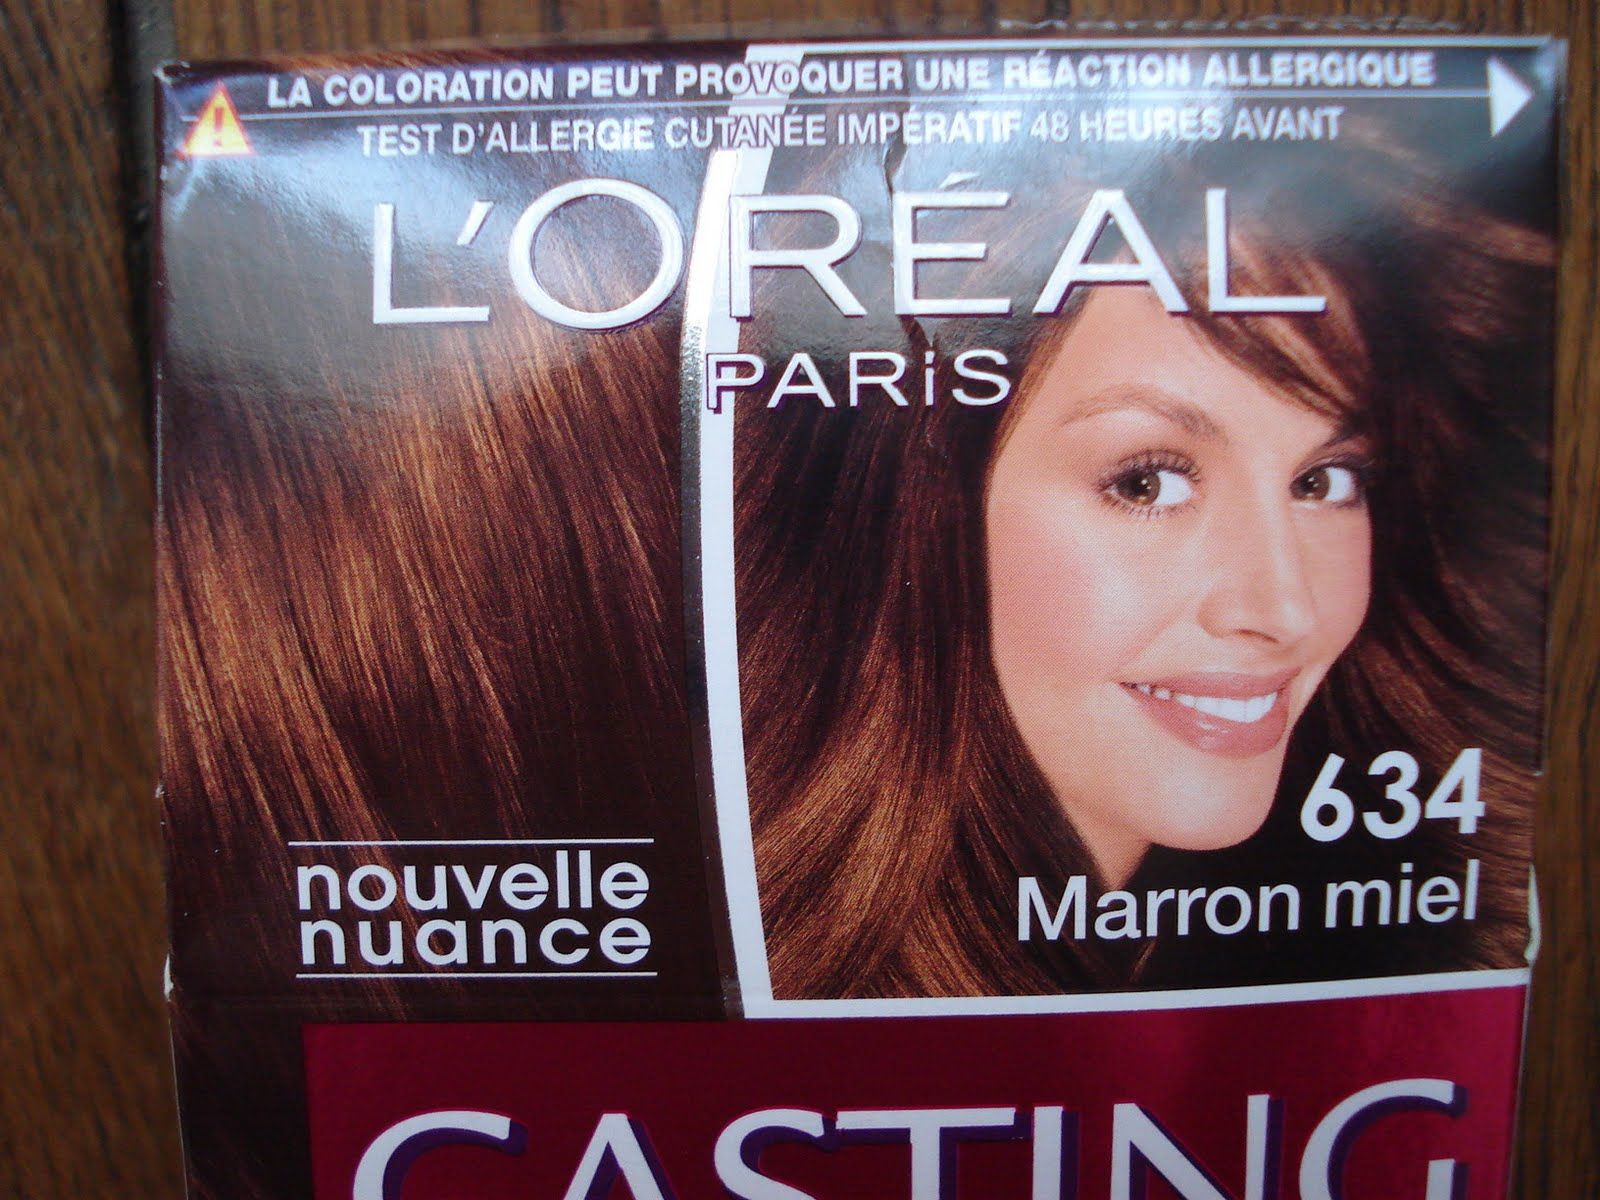 Coloration cheveux test allergie